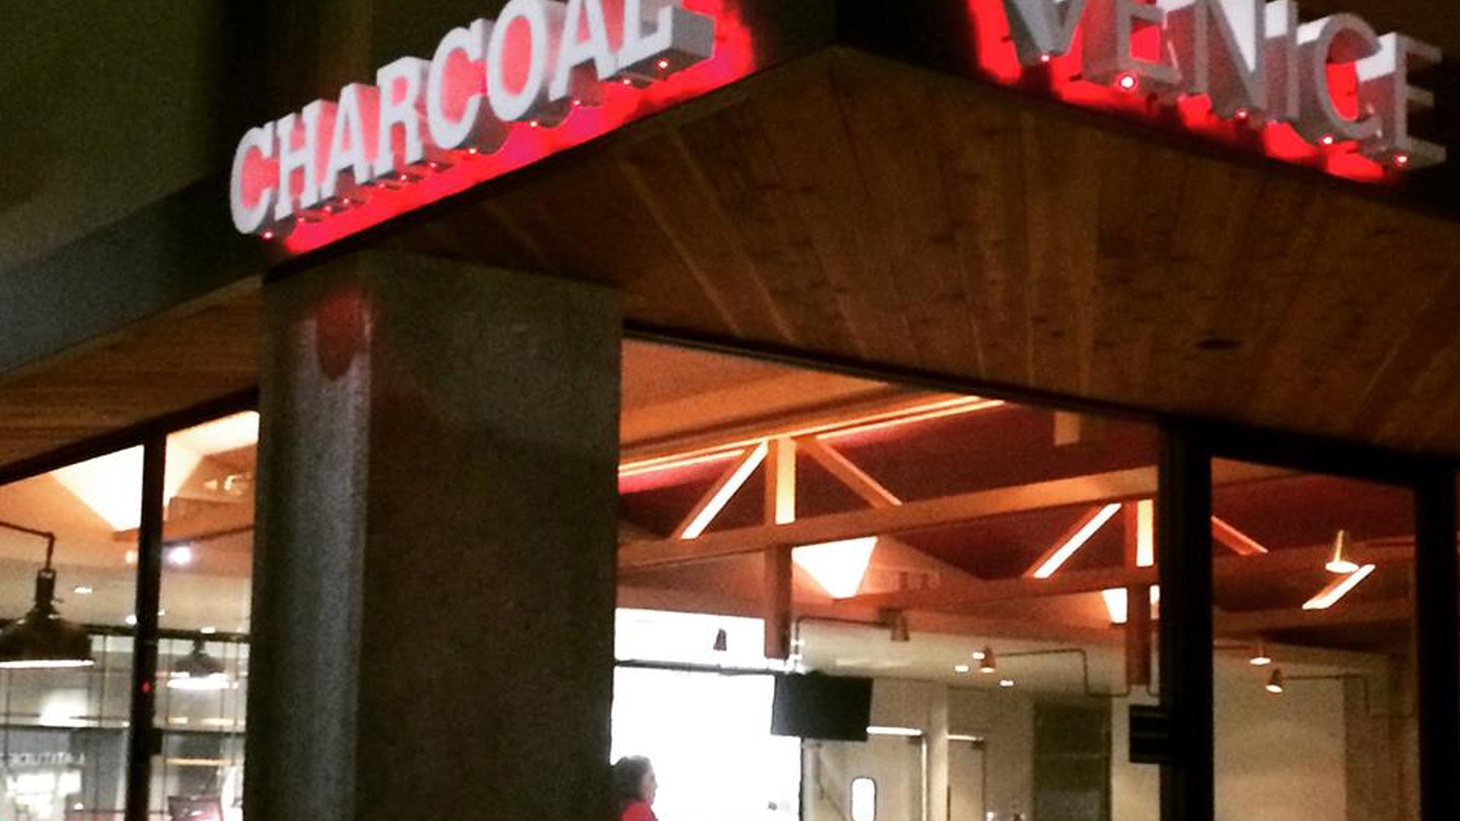 Food critic Jonathan Gold discusses some of the dishes he likes at Charcoal Venice, a new restaurant from Josiah Citrin.